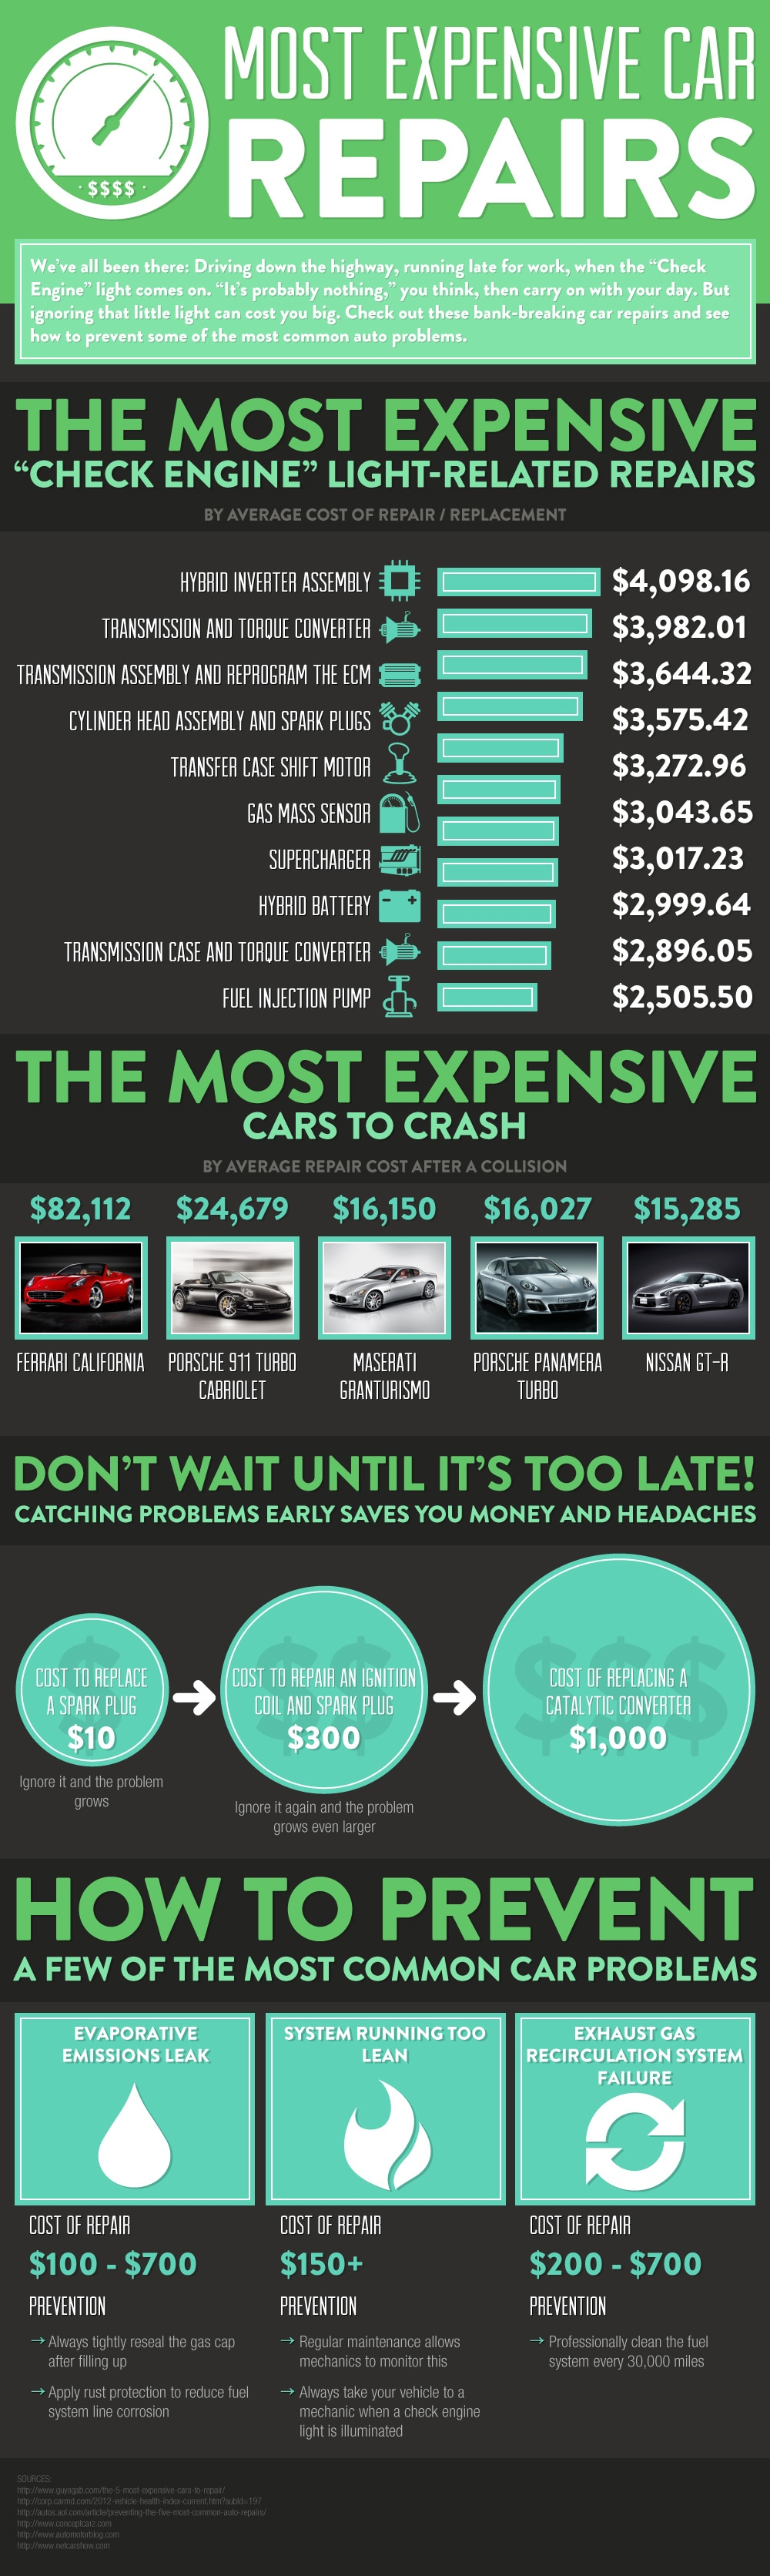 aaca88ed0a0d028a01c98c1bccb009ea InfoGraphic: The Most Expensive Car Repairs